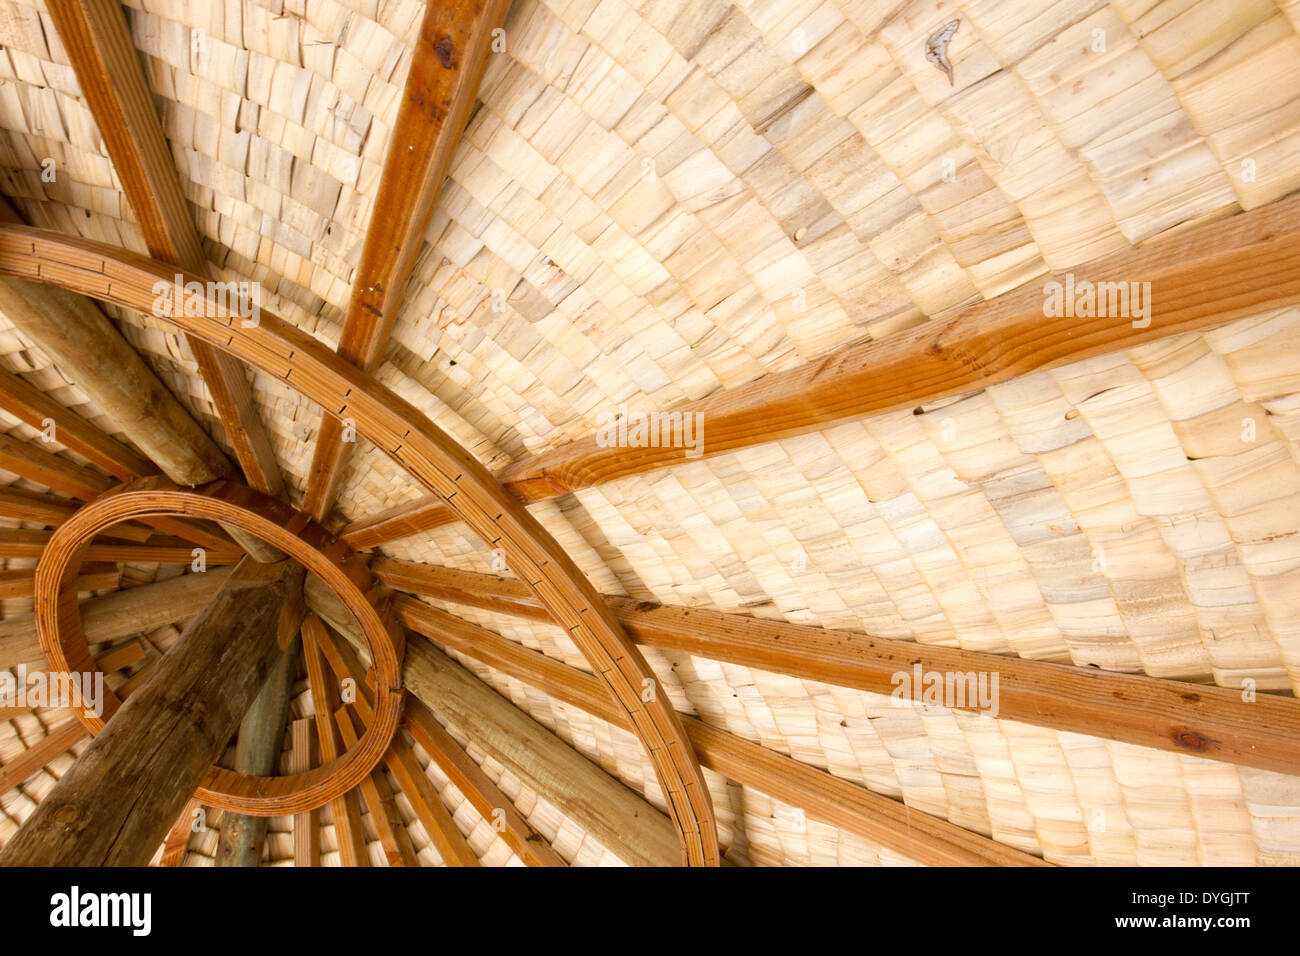 Ceiling of round thatched roof hut showing structure of woven palm thatch - Stock Image